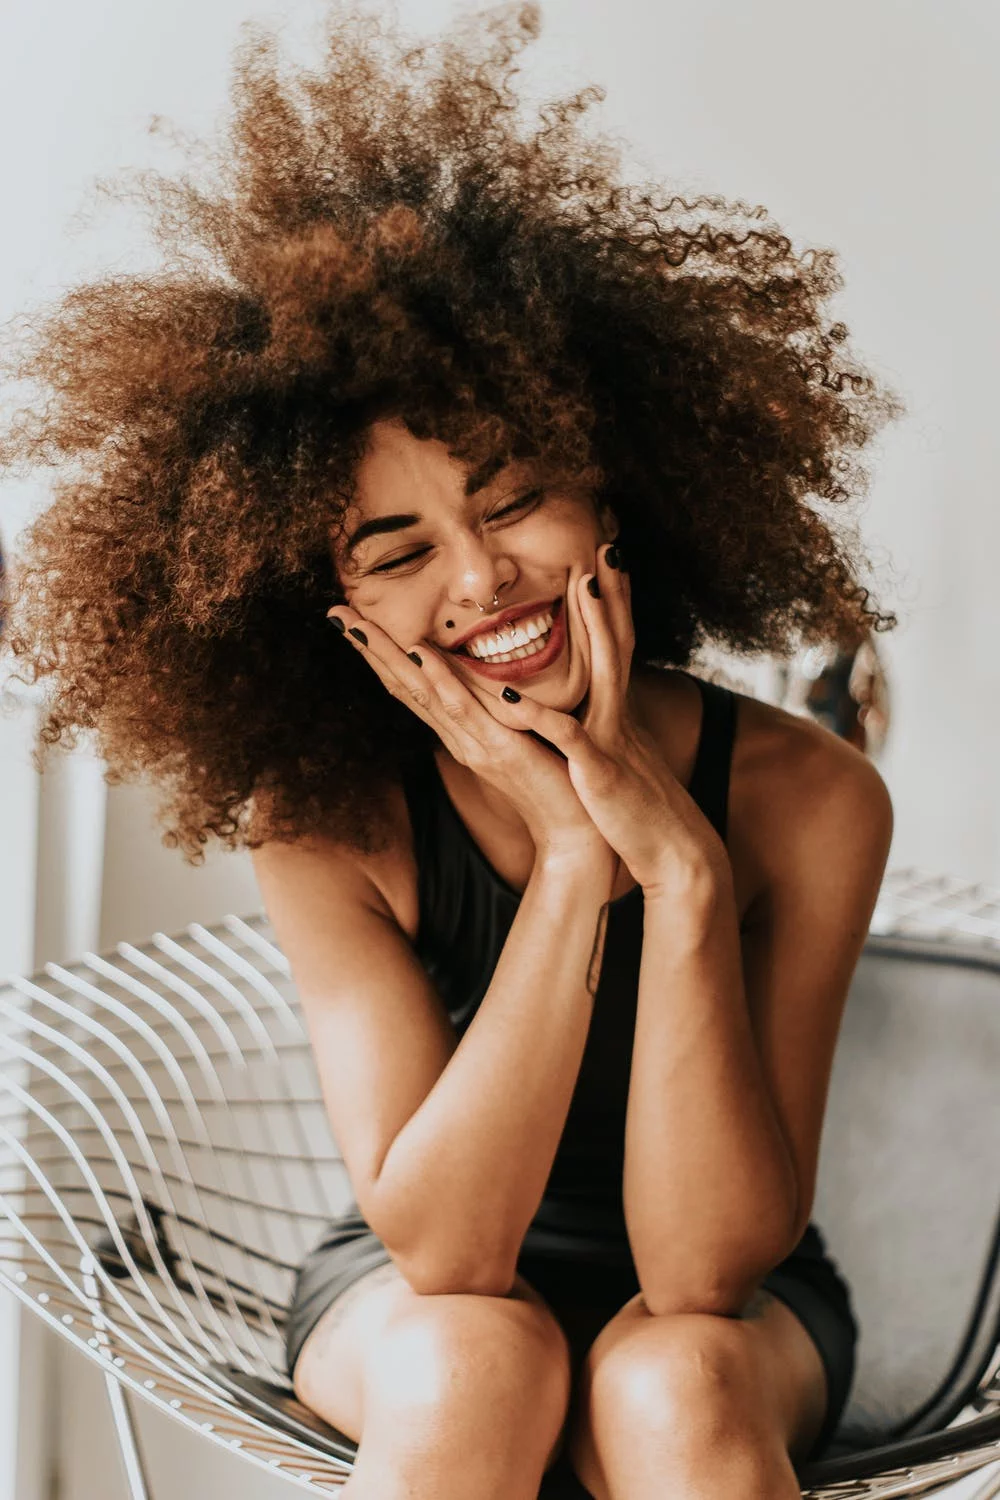 woman with curly hair laughing